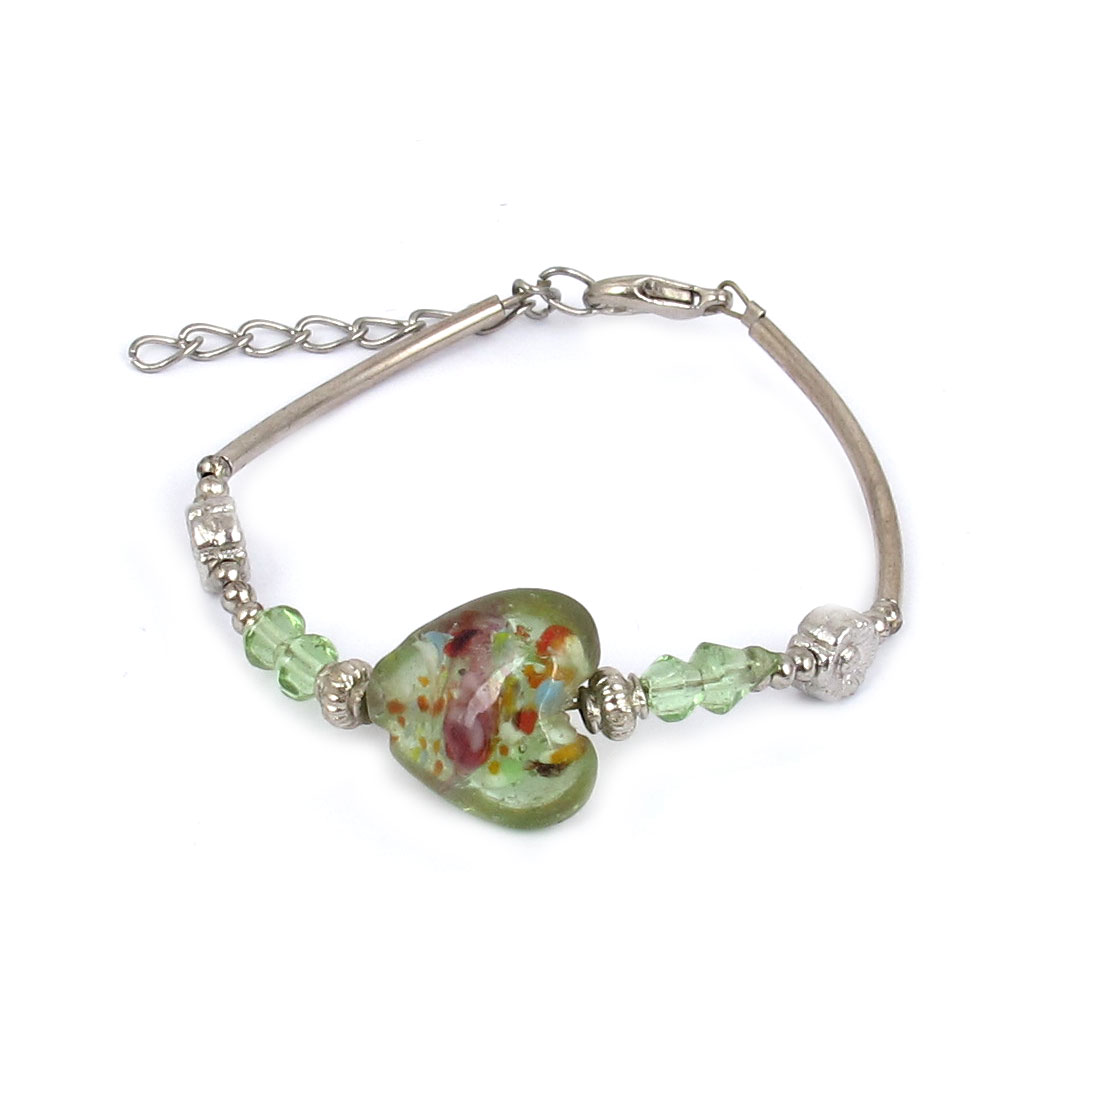 Lady Lobster Clasp Link Heart Shaped Bead Detail Wrist Decoration Bracelet Bangle Green